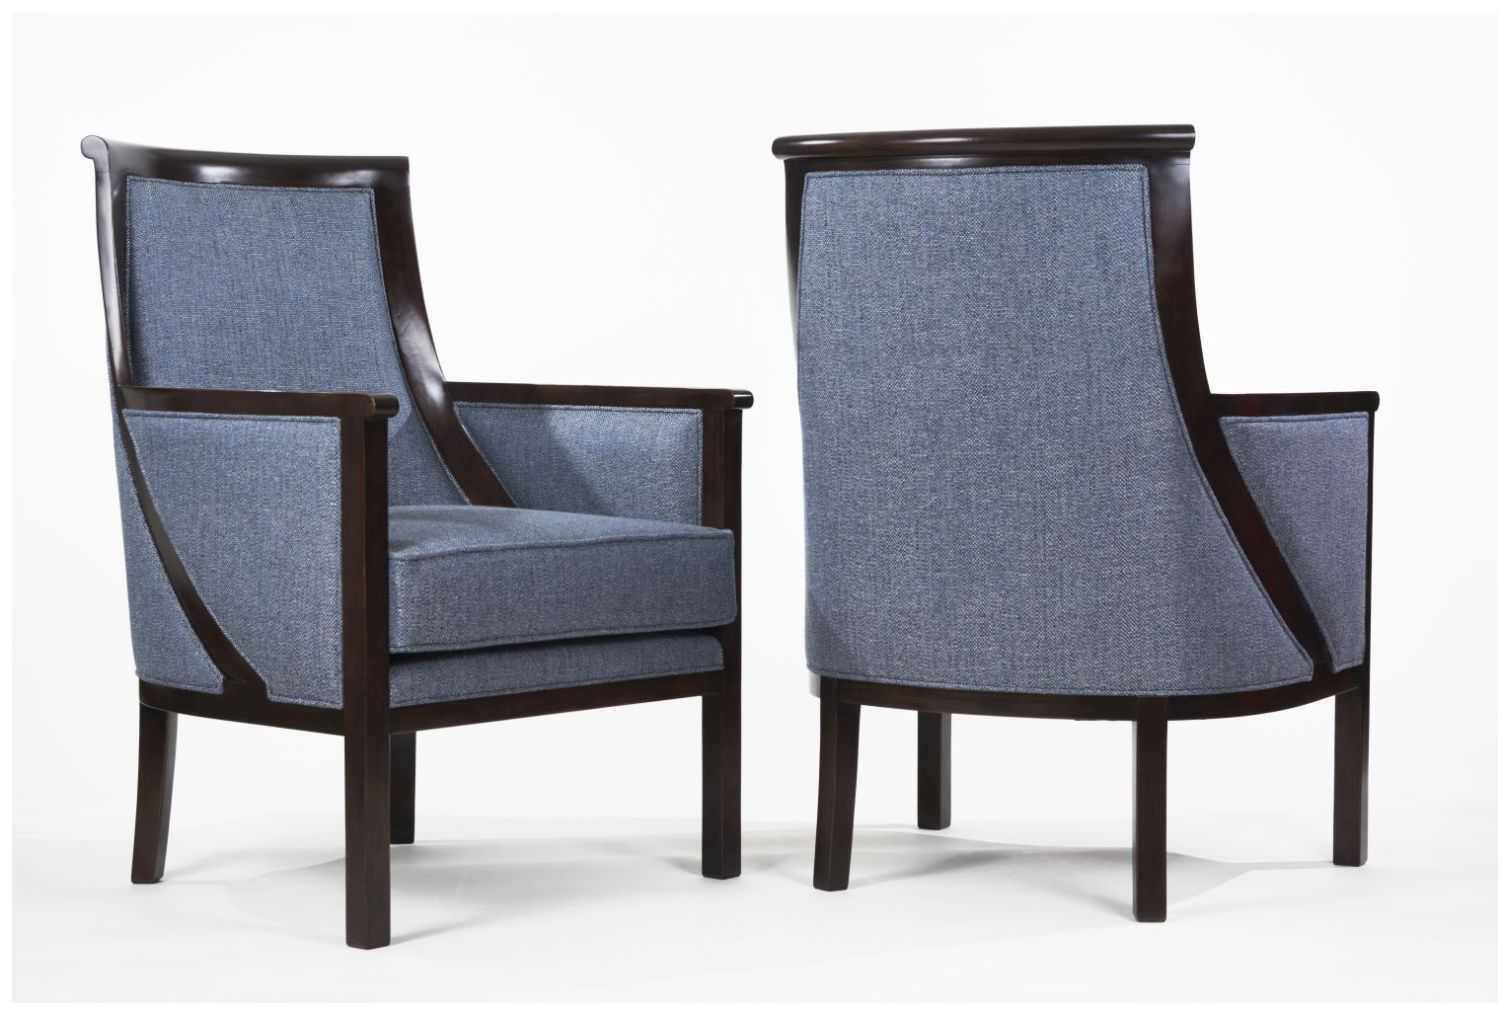 Custom Hospitality Armchairs with Upholstered Back and Sidepanels